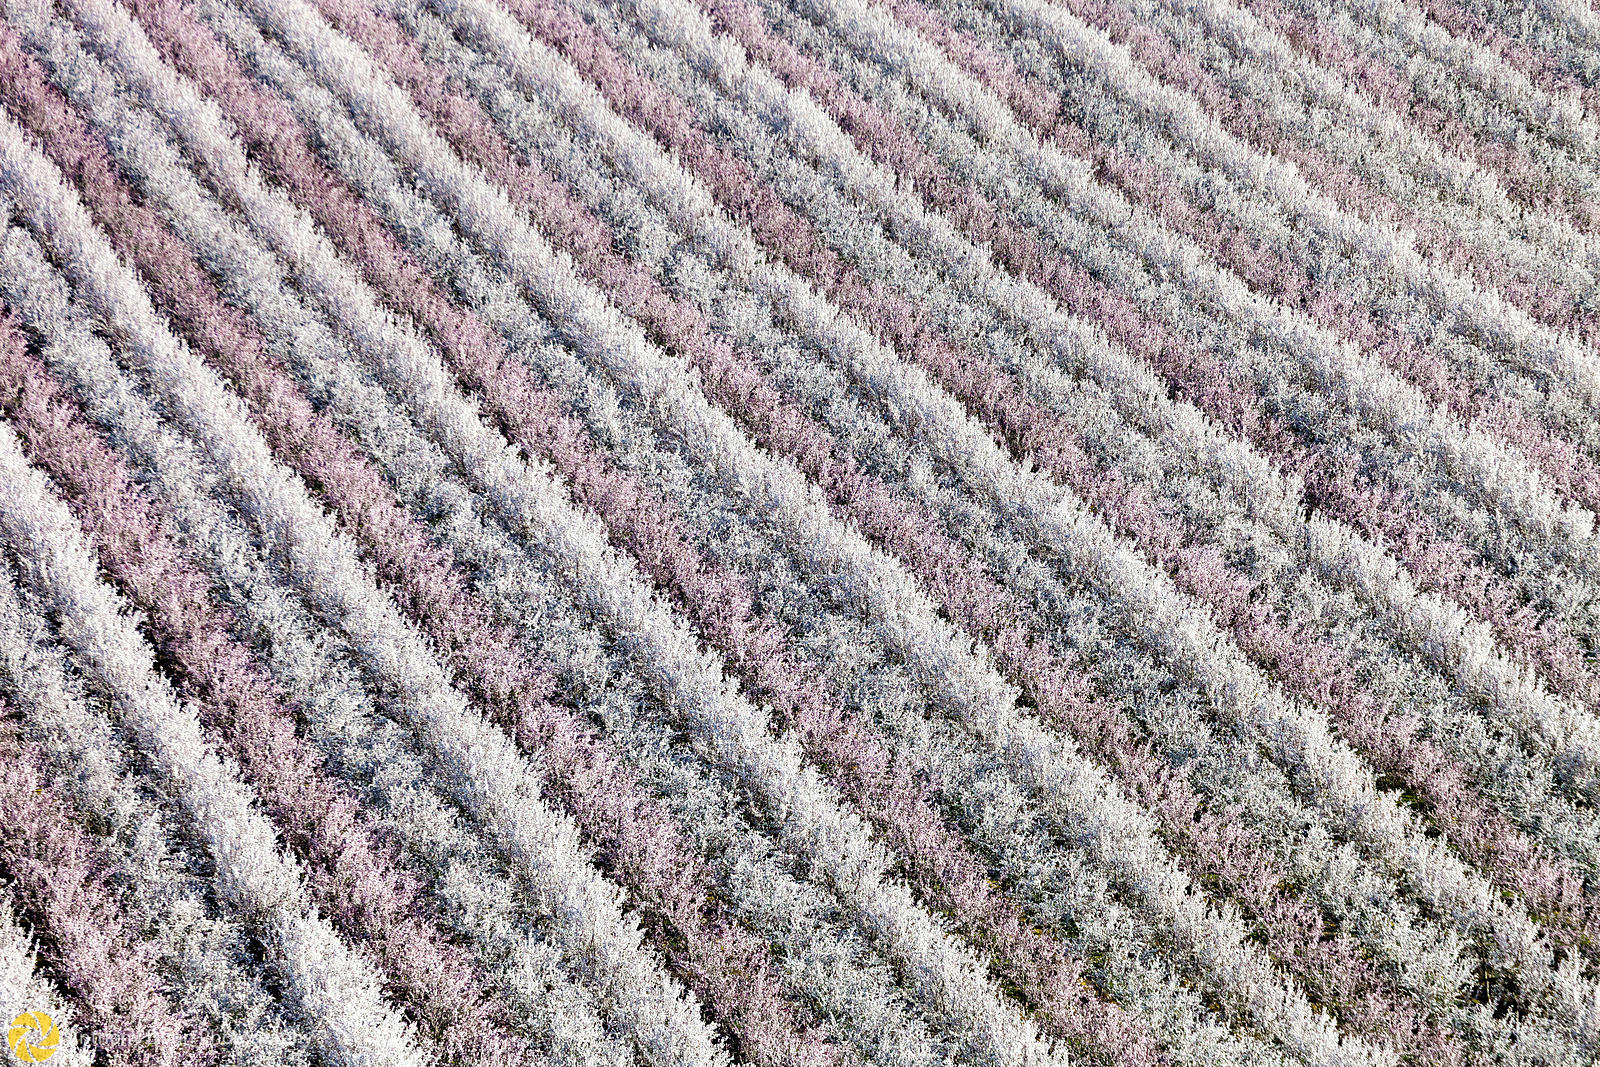 Almond Trees in Bloom from the Air #2